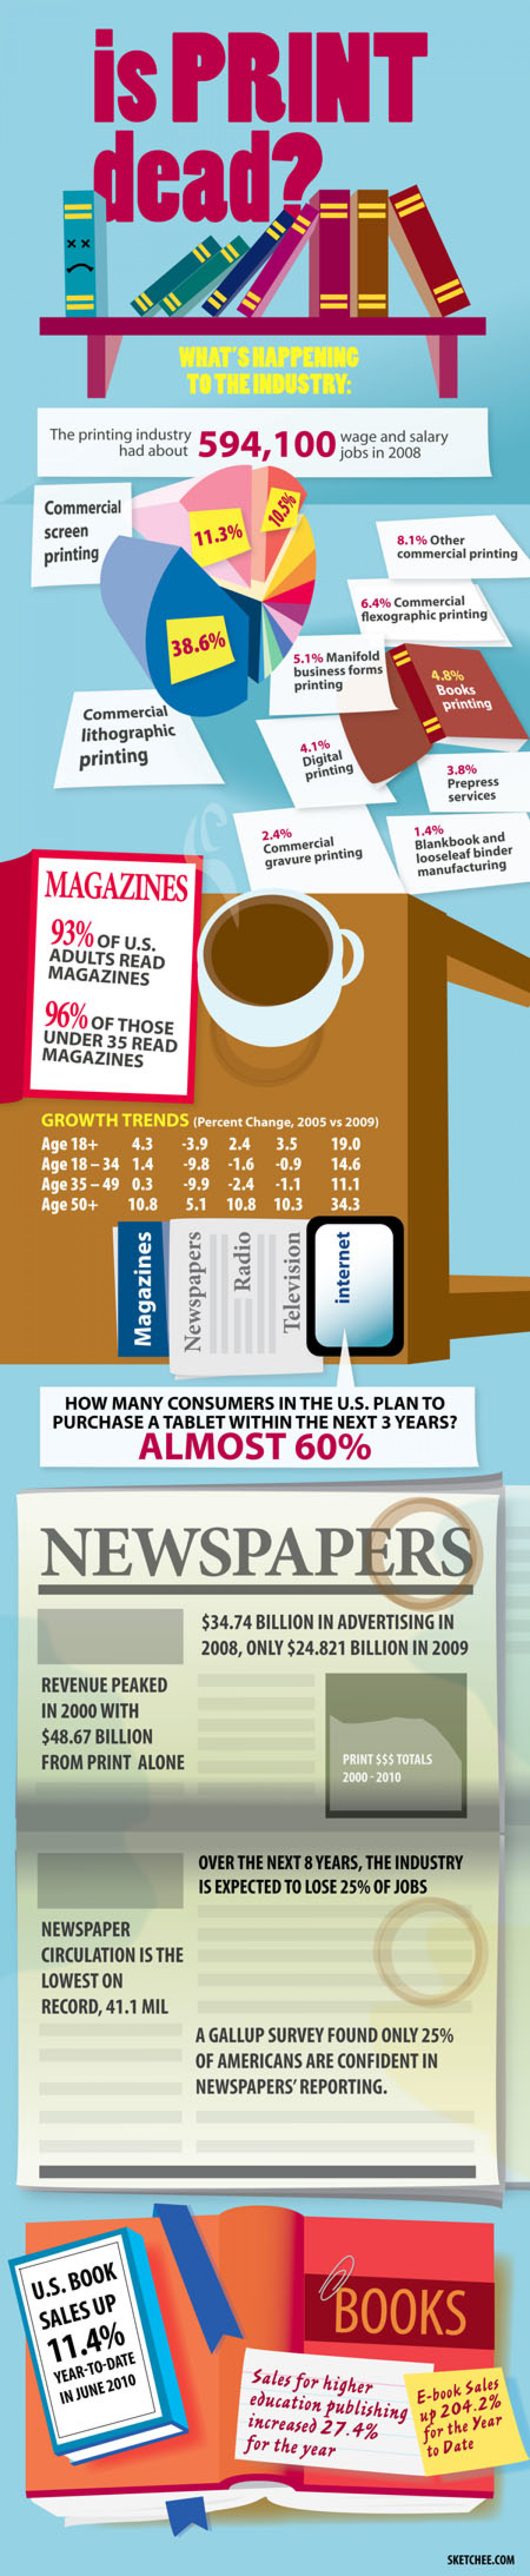 Is Print Dead? Infographic